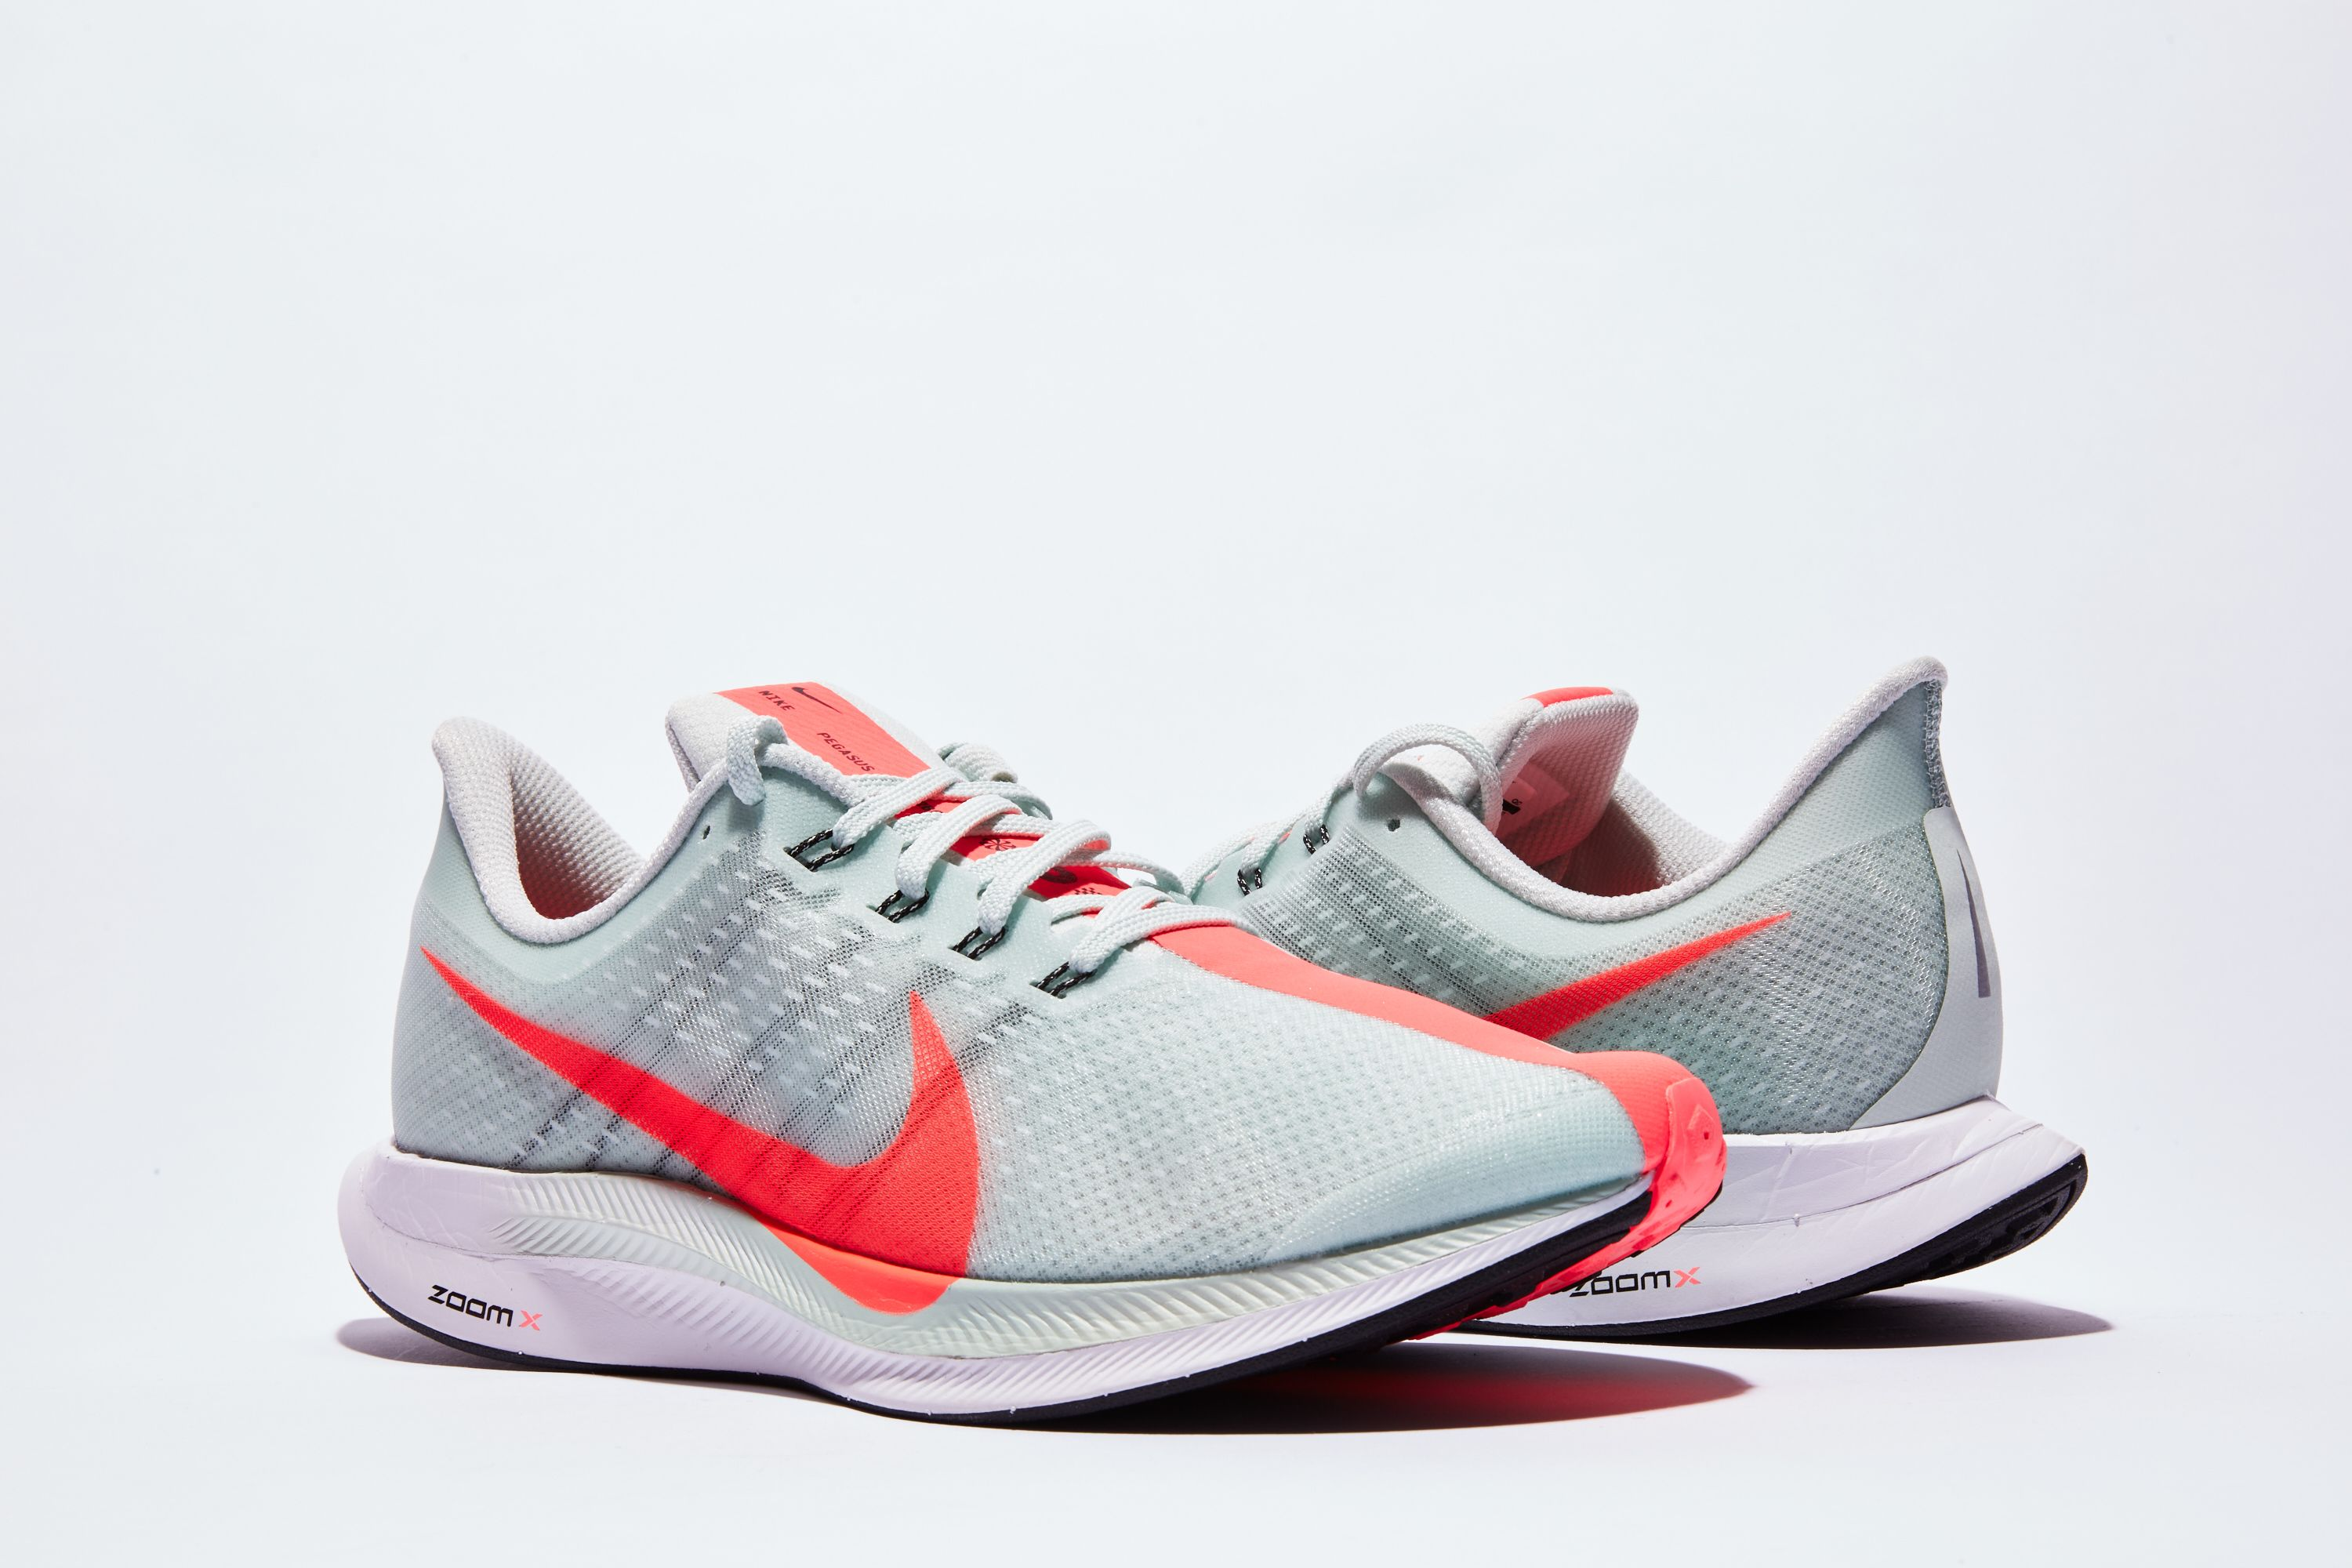 8e05951261640 Nike Zoom Pegasus 35 Turbo - Running Shoes for Speed